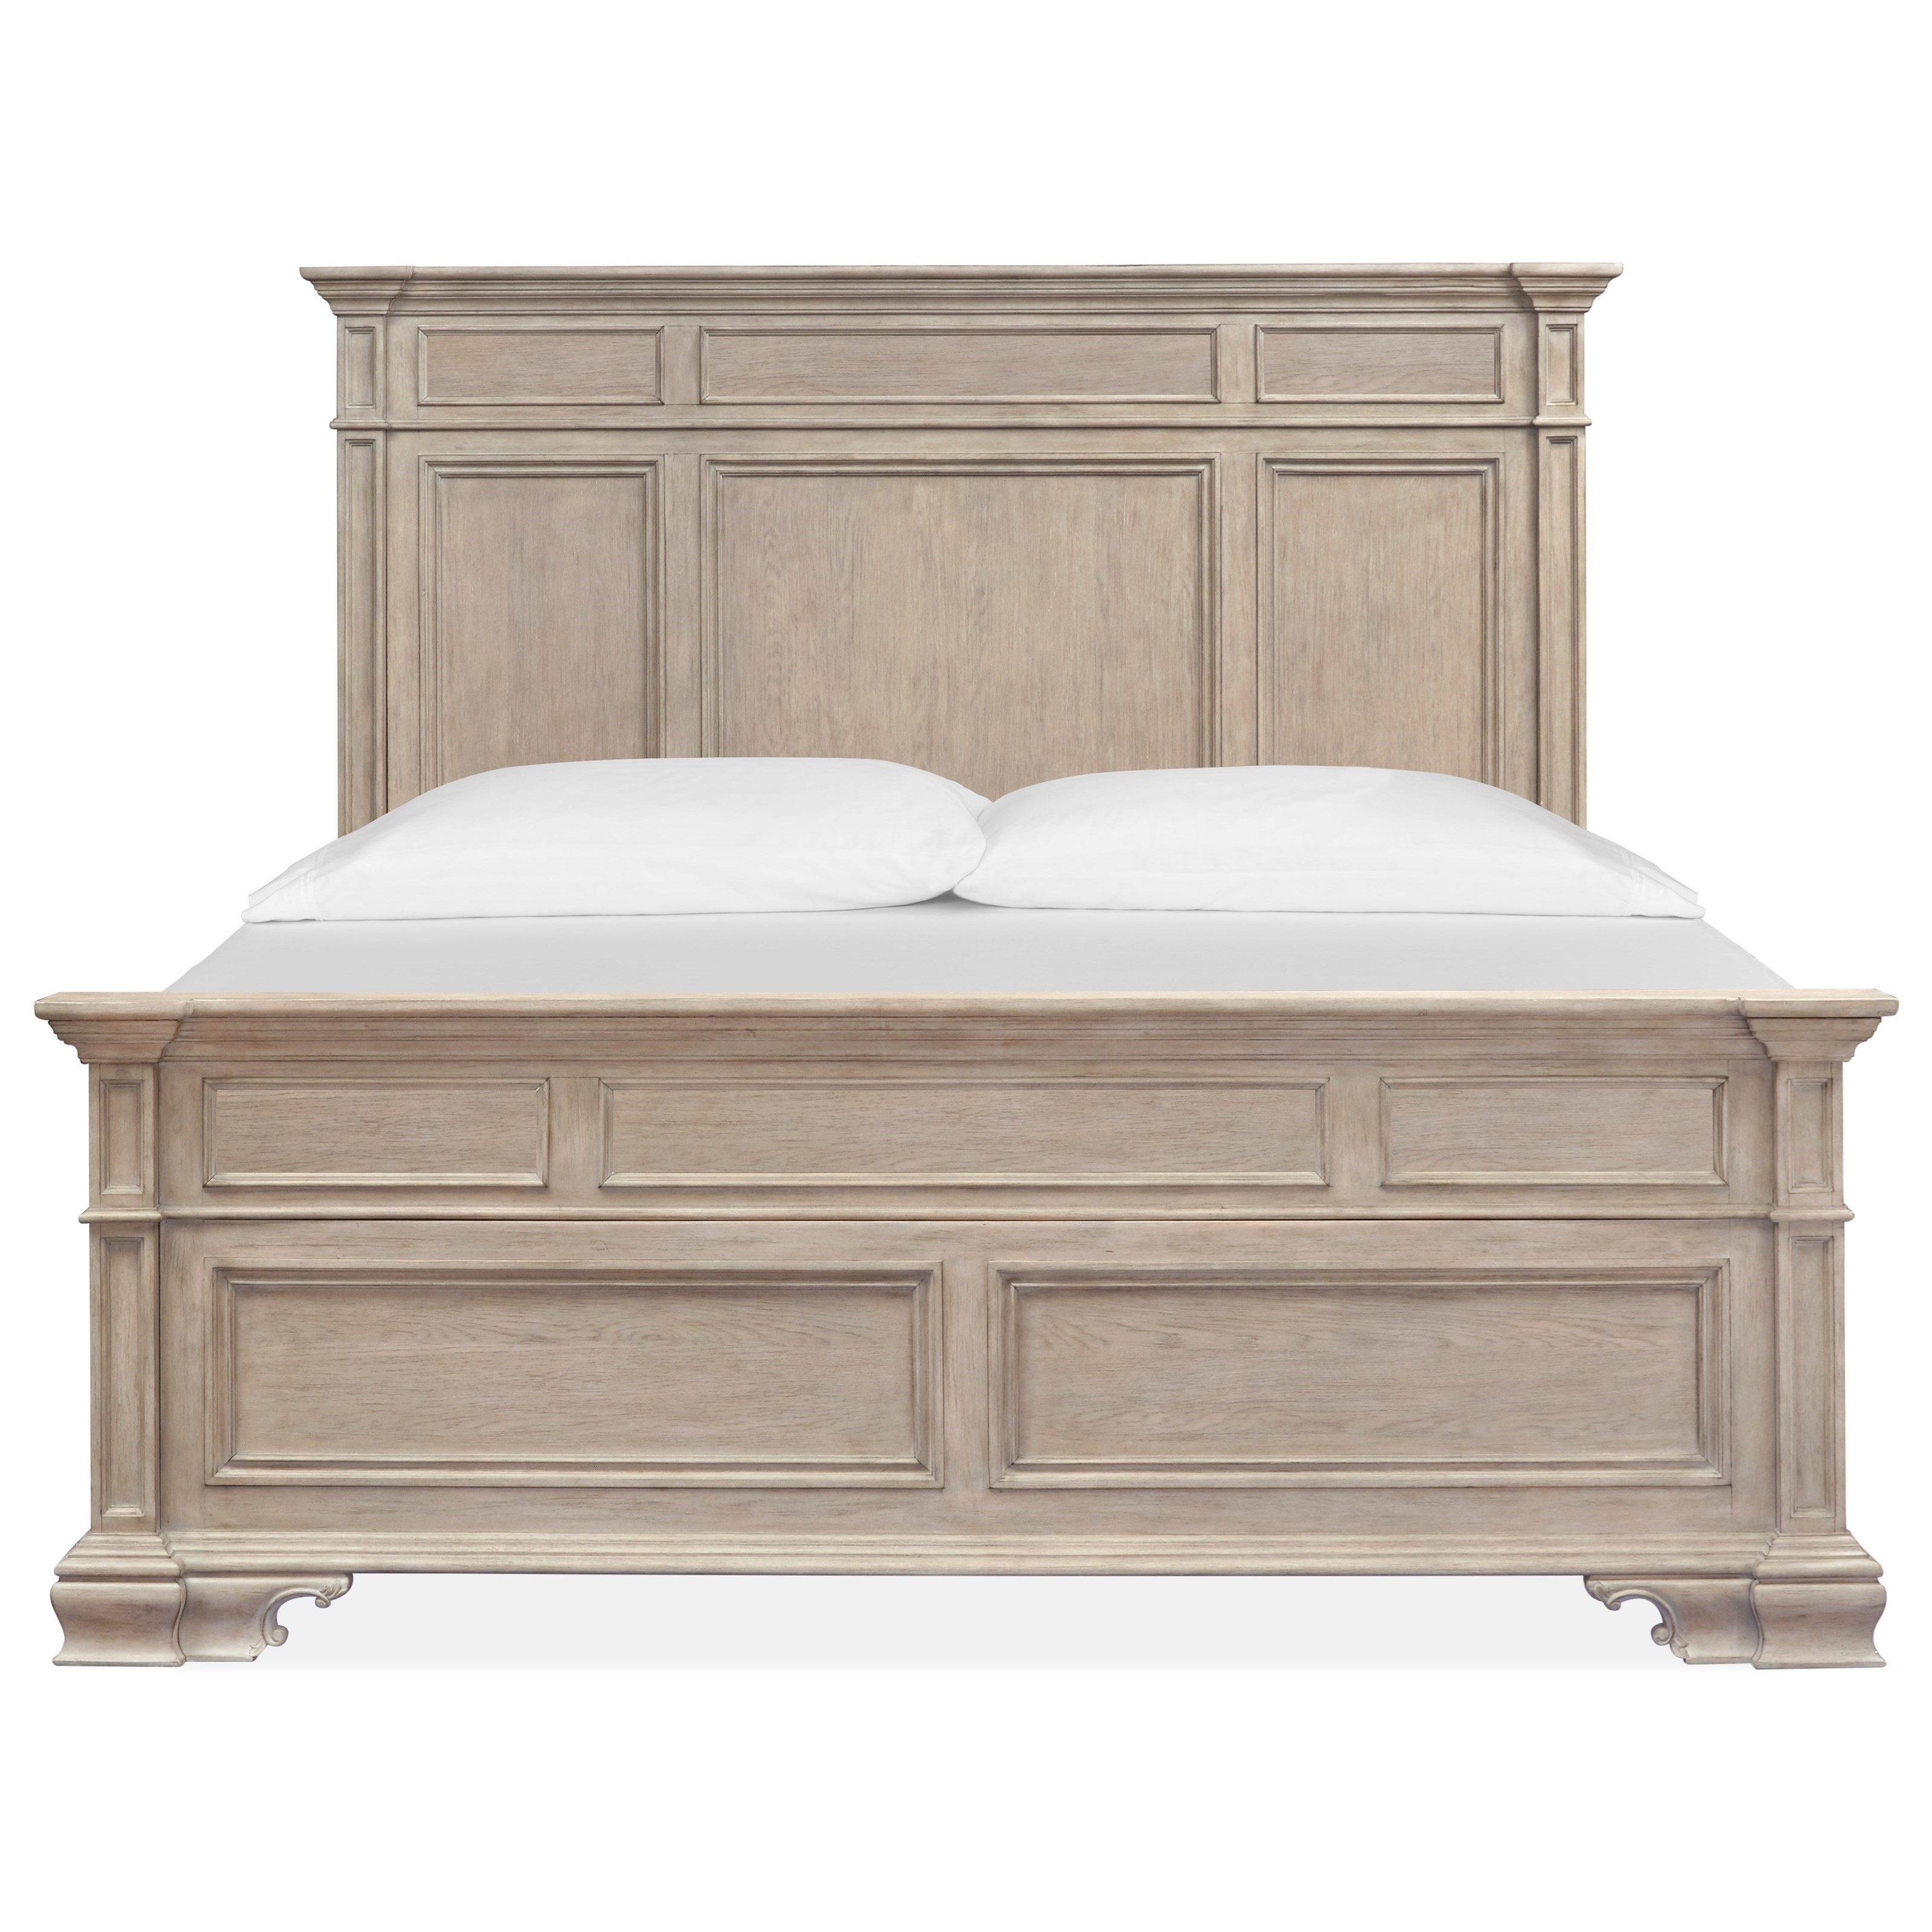 Jocelyn - B5135 King Panel Bed  by Magnussen Home at Stoney Creek Furniture